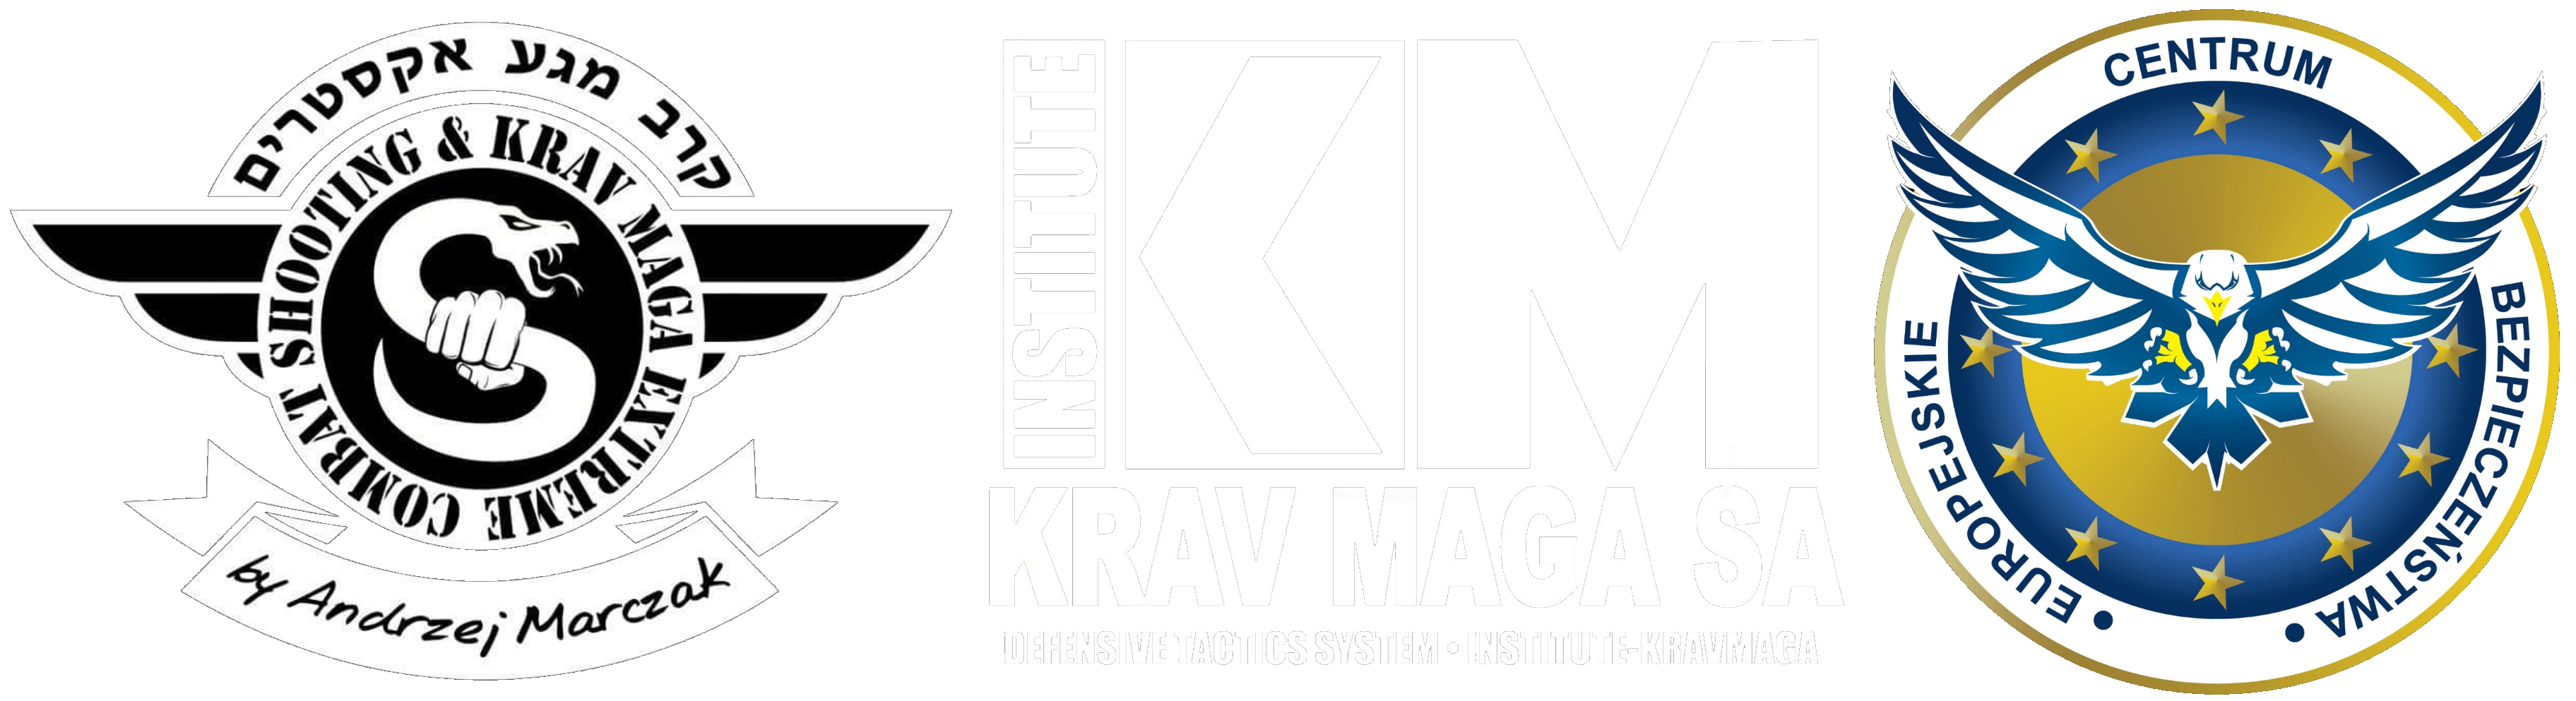 Institute Krav Maga South Africa / SA | Defensive Tactics